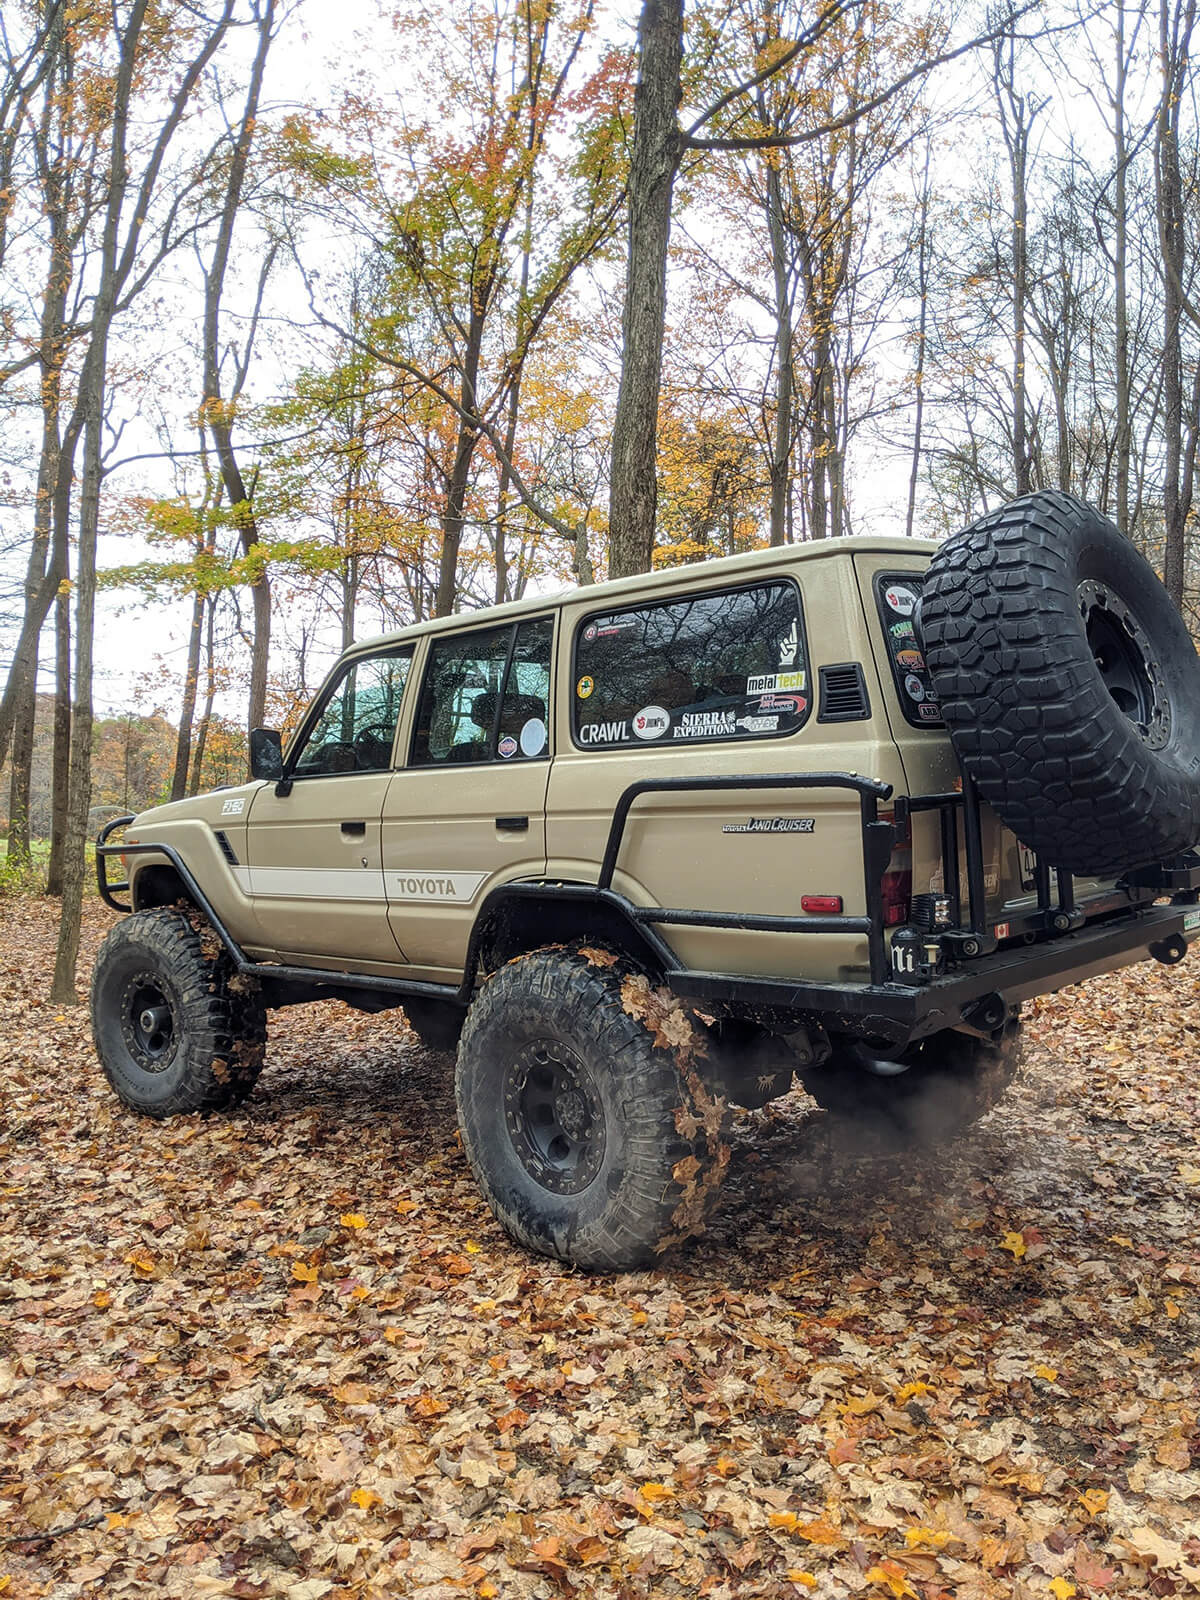 Land Cruiser 60 series on 40 inch wheels and 6 inch lift